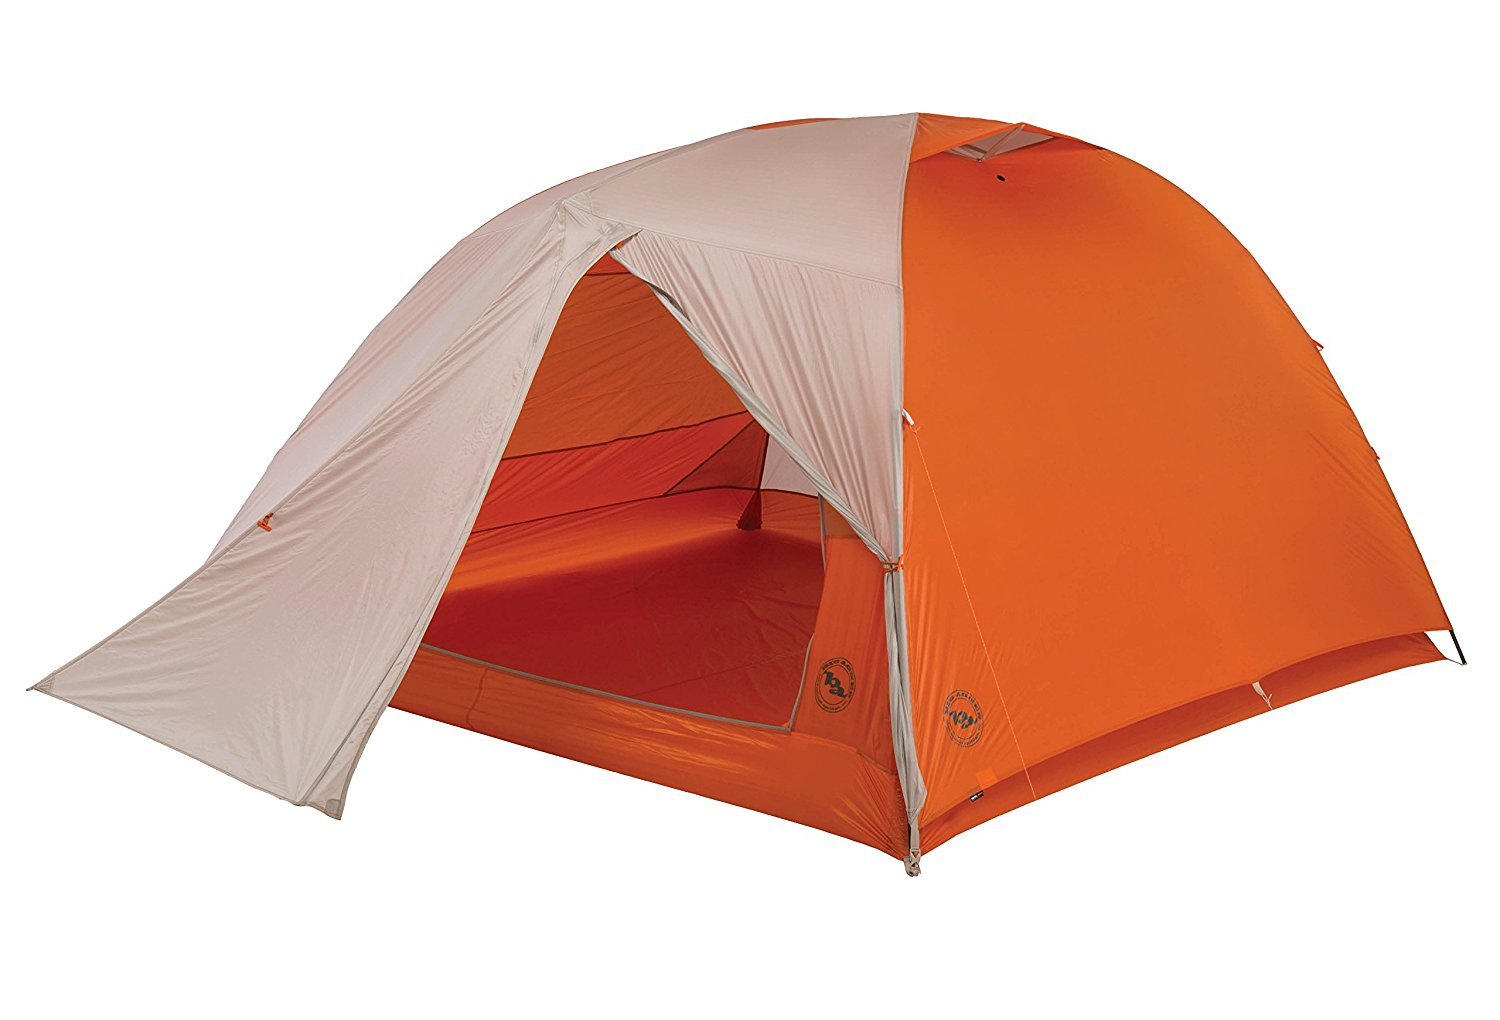 Best 3 Person Tents for 3 People  sc 1 st  Chuggie & Best 3 Person Tents: A Review of the Sundome vs Copper Spur - Chuggie